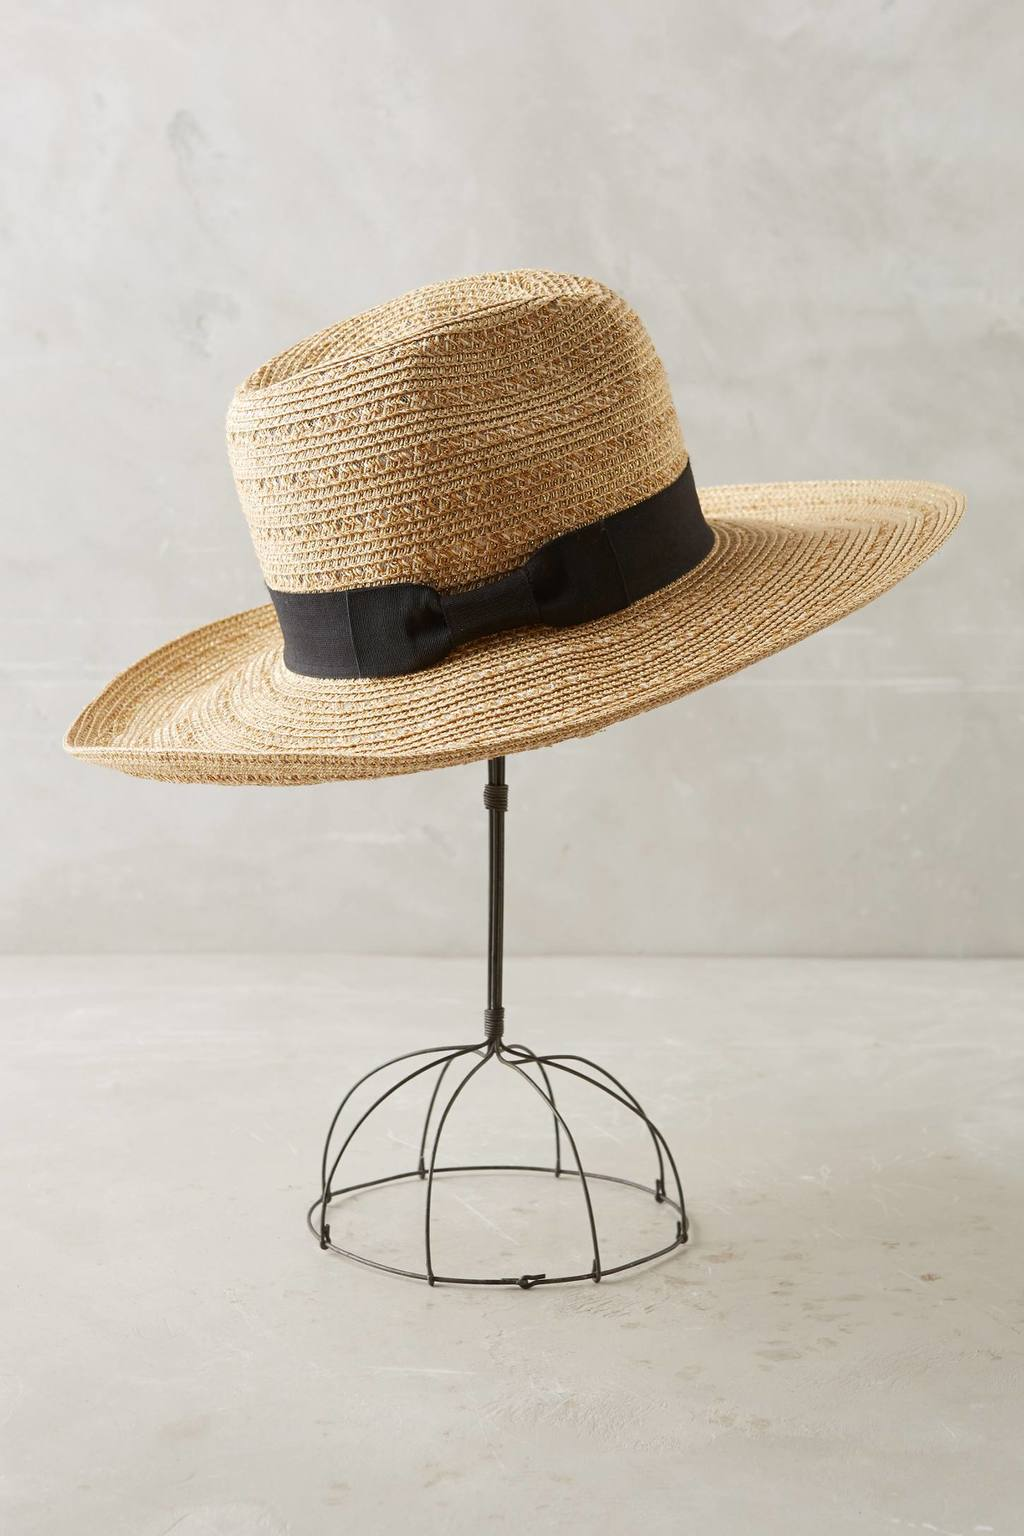 Coronado Rancher - predominant colour: ivory/cream; secondary colour: black; type of pattern: light; embellishment: ribbon; style: wide brimmed; size: standard; material: macrame/raffia/straw; pattern: plain; occasions: holiday; season: s/s 2016; wardrobe: holiday